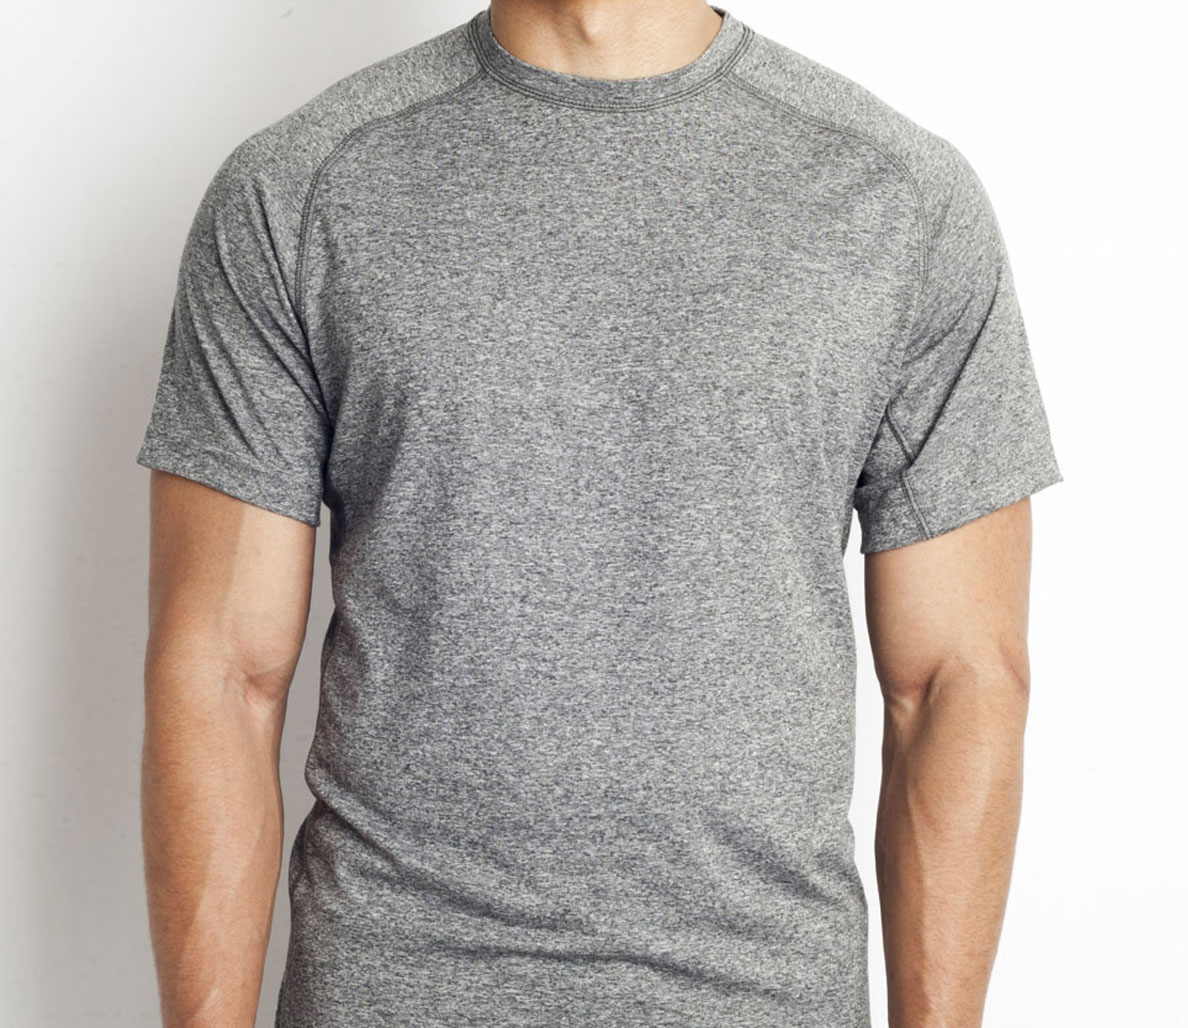 3d9efe03 The 10 Best T-Shirts for a Muscular Body